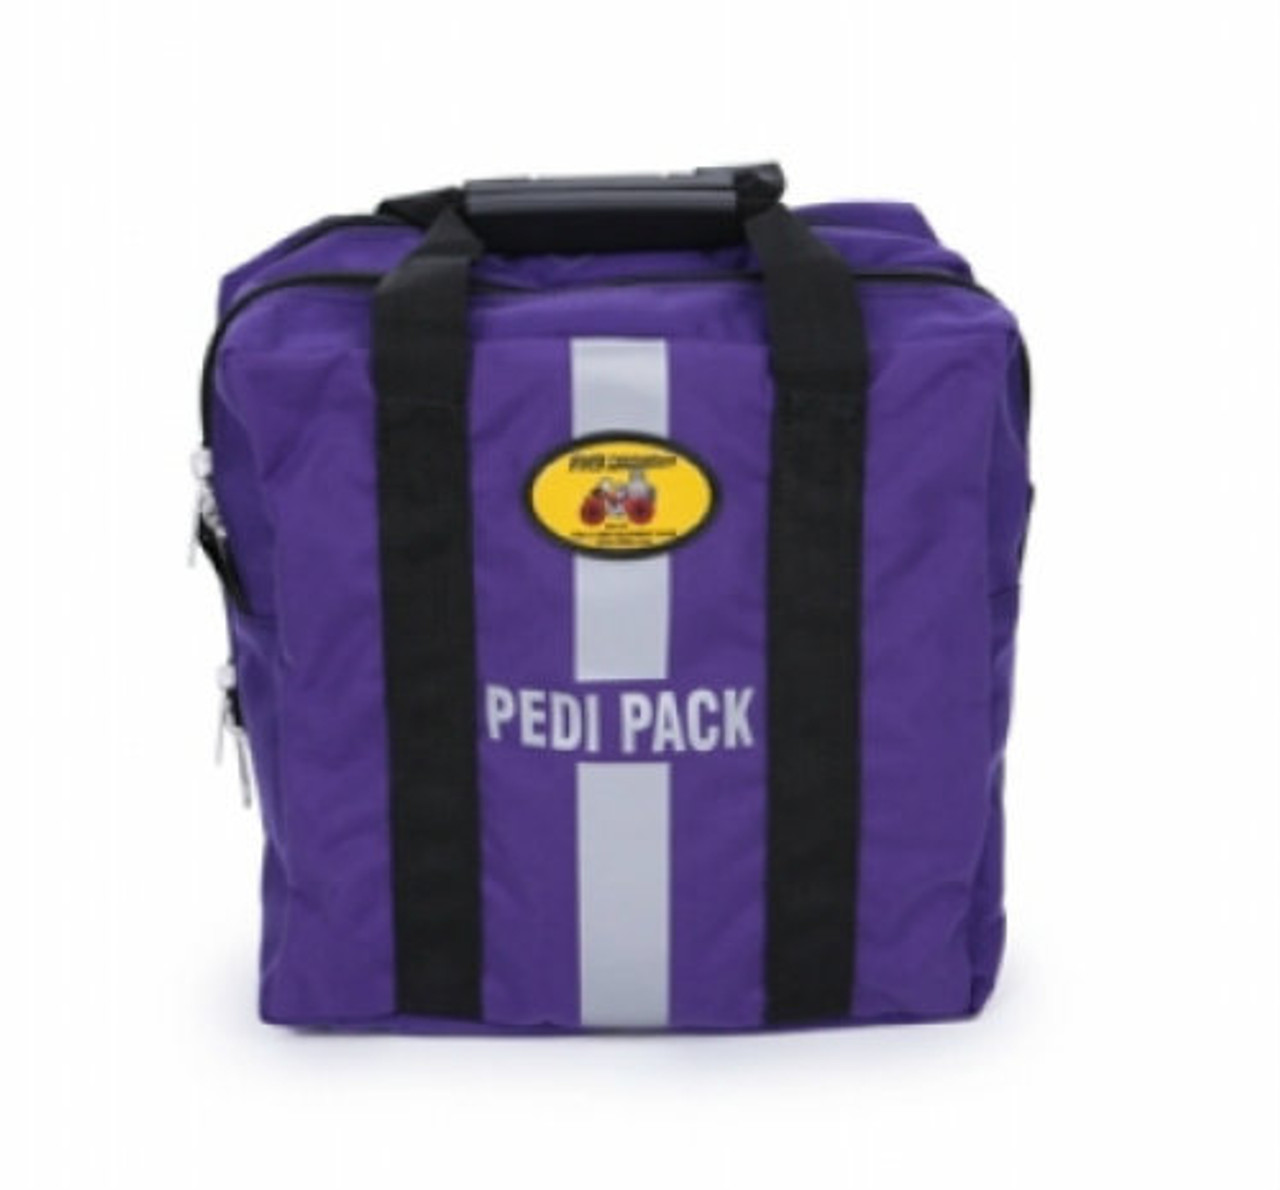 Ped ALS Pack - Front